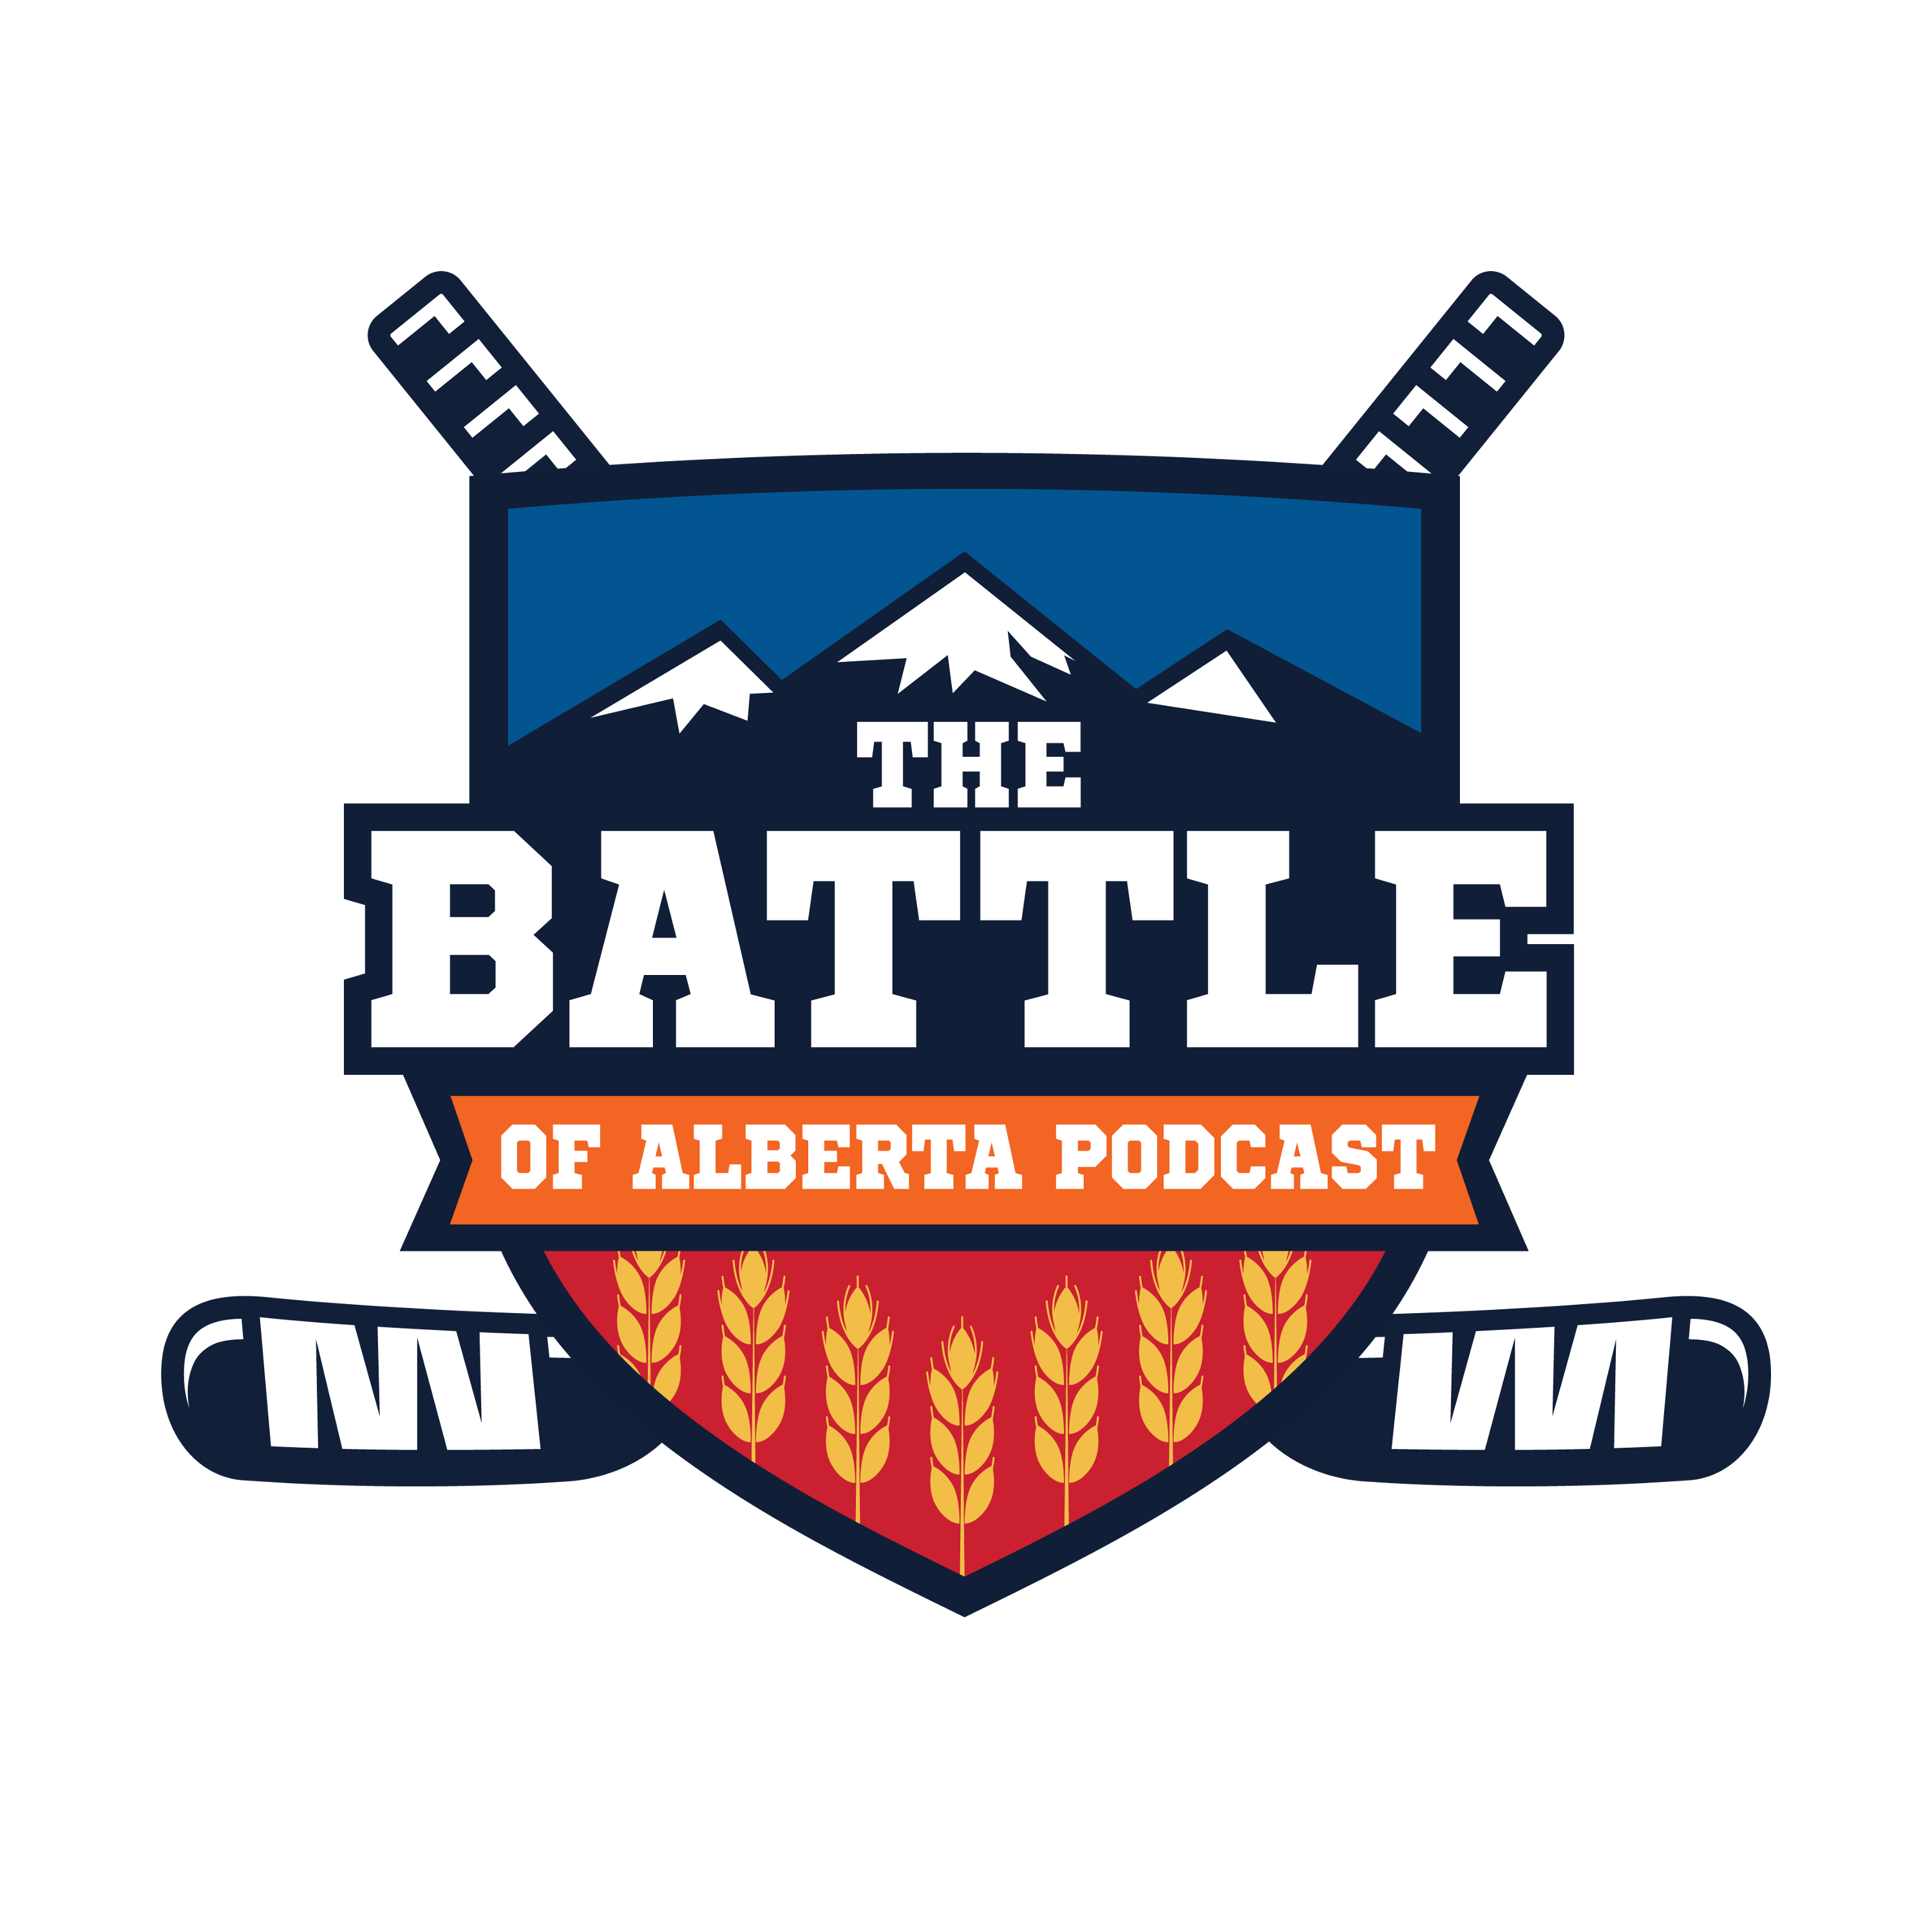 The Battle of Alberta Podcast